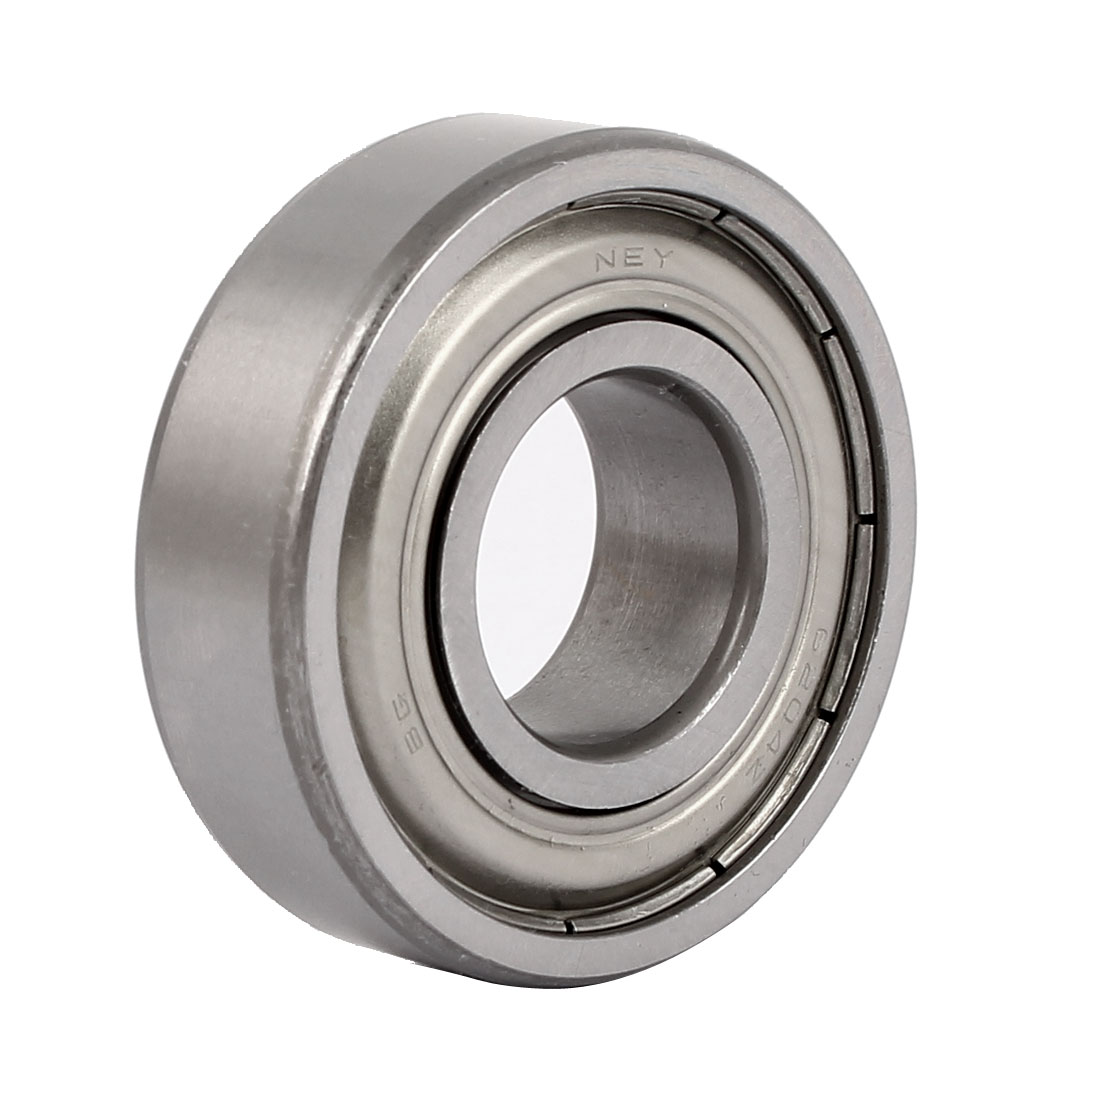 ZZ6204 47mm x 20mm Single Row Steel Sealed Deep Groove Ball Wheel Bearing